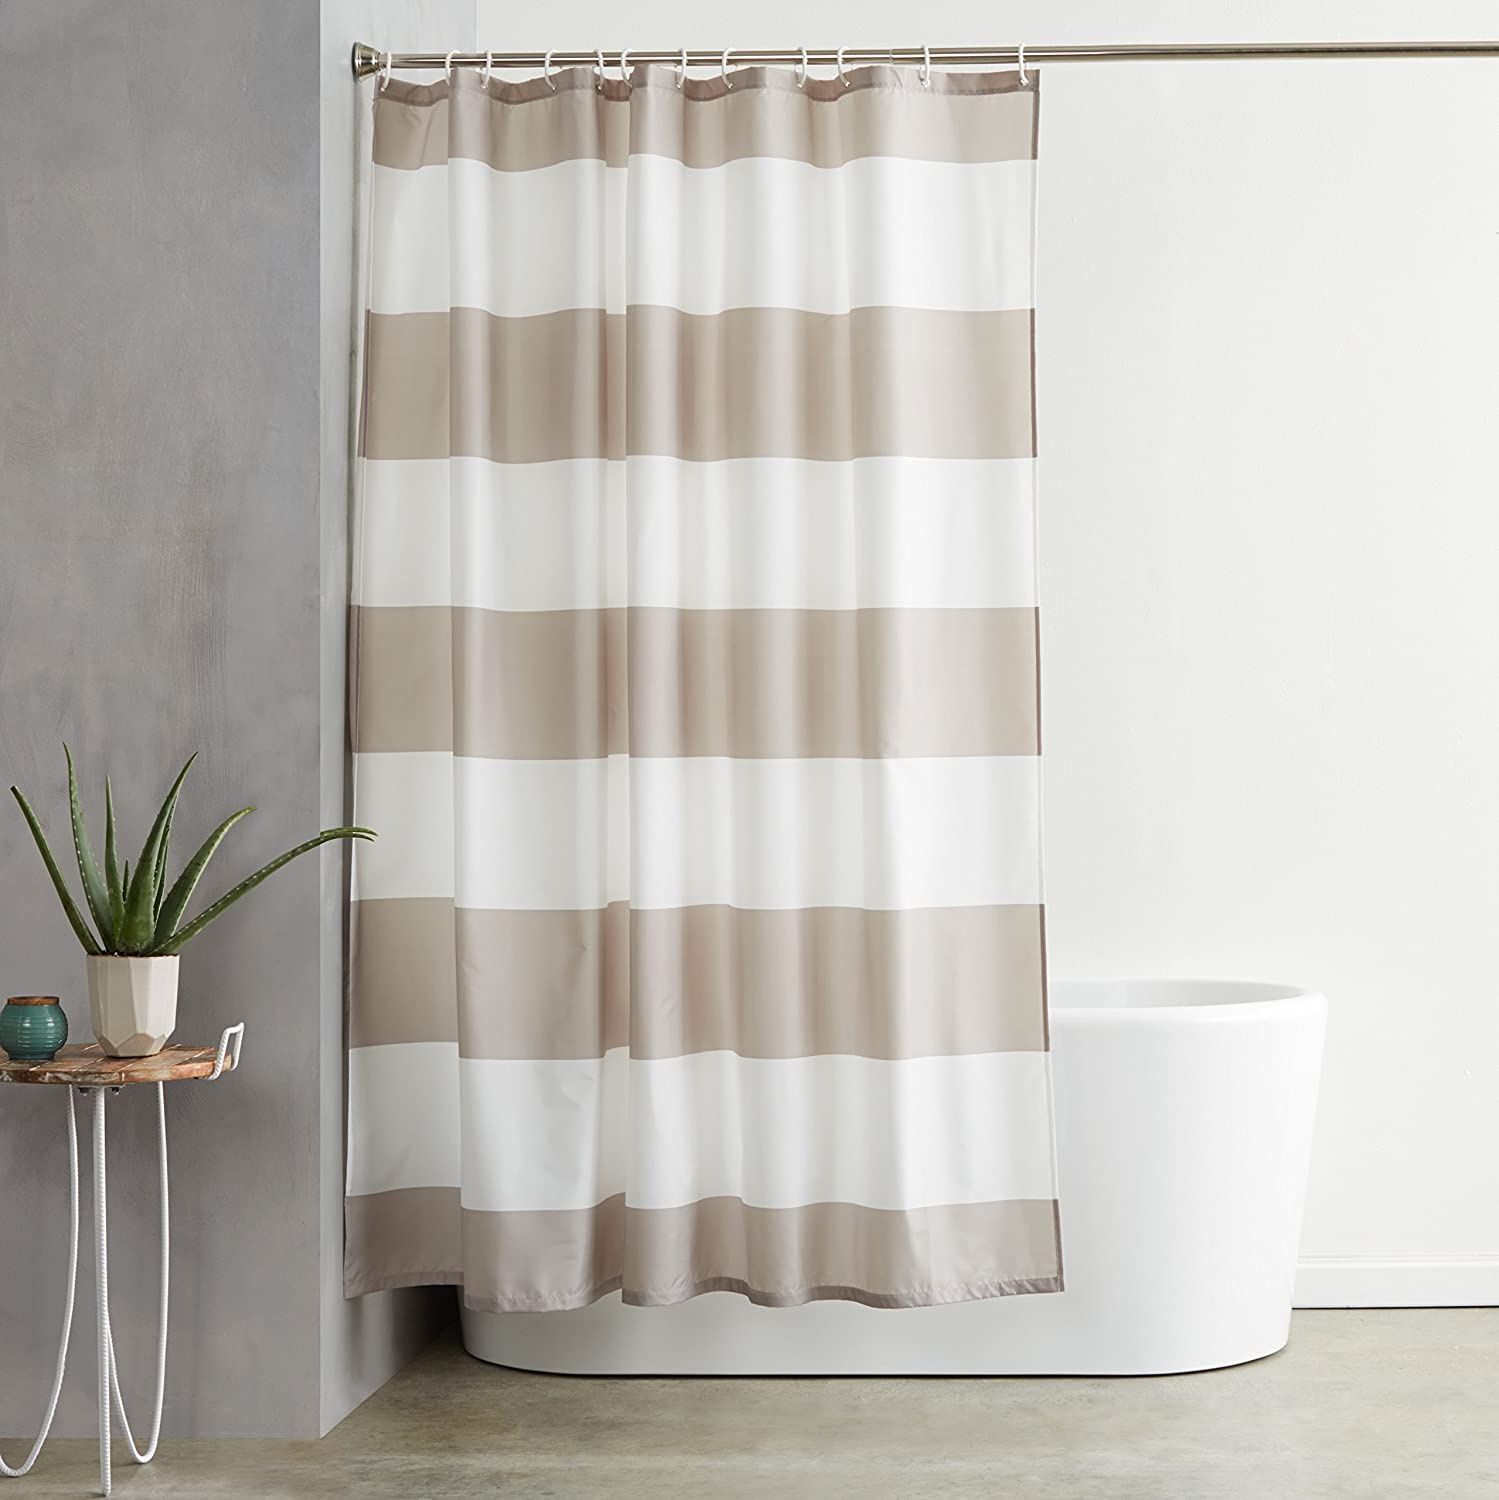 Shower Curtains from cybergamesl.ga Update and organize your bathroom to reflect your own personal style and cybergamesl.ga your search by price, discounts available, and top brand names, like InterDesign and more.